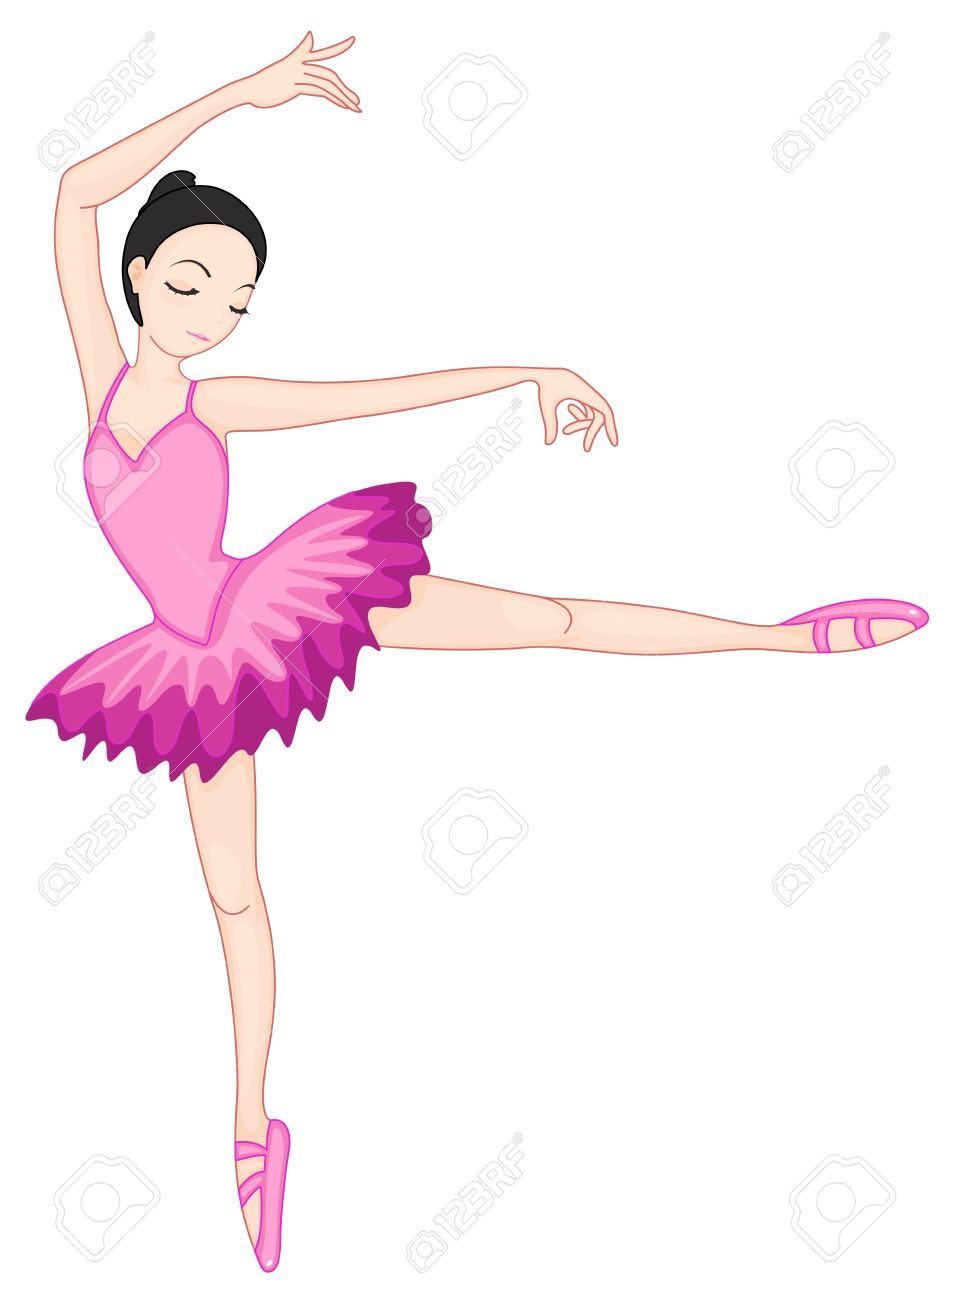 small resolution of illustration of a ballerina pose on white royalty free cliparts vectors and stock illustration image 13268644